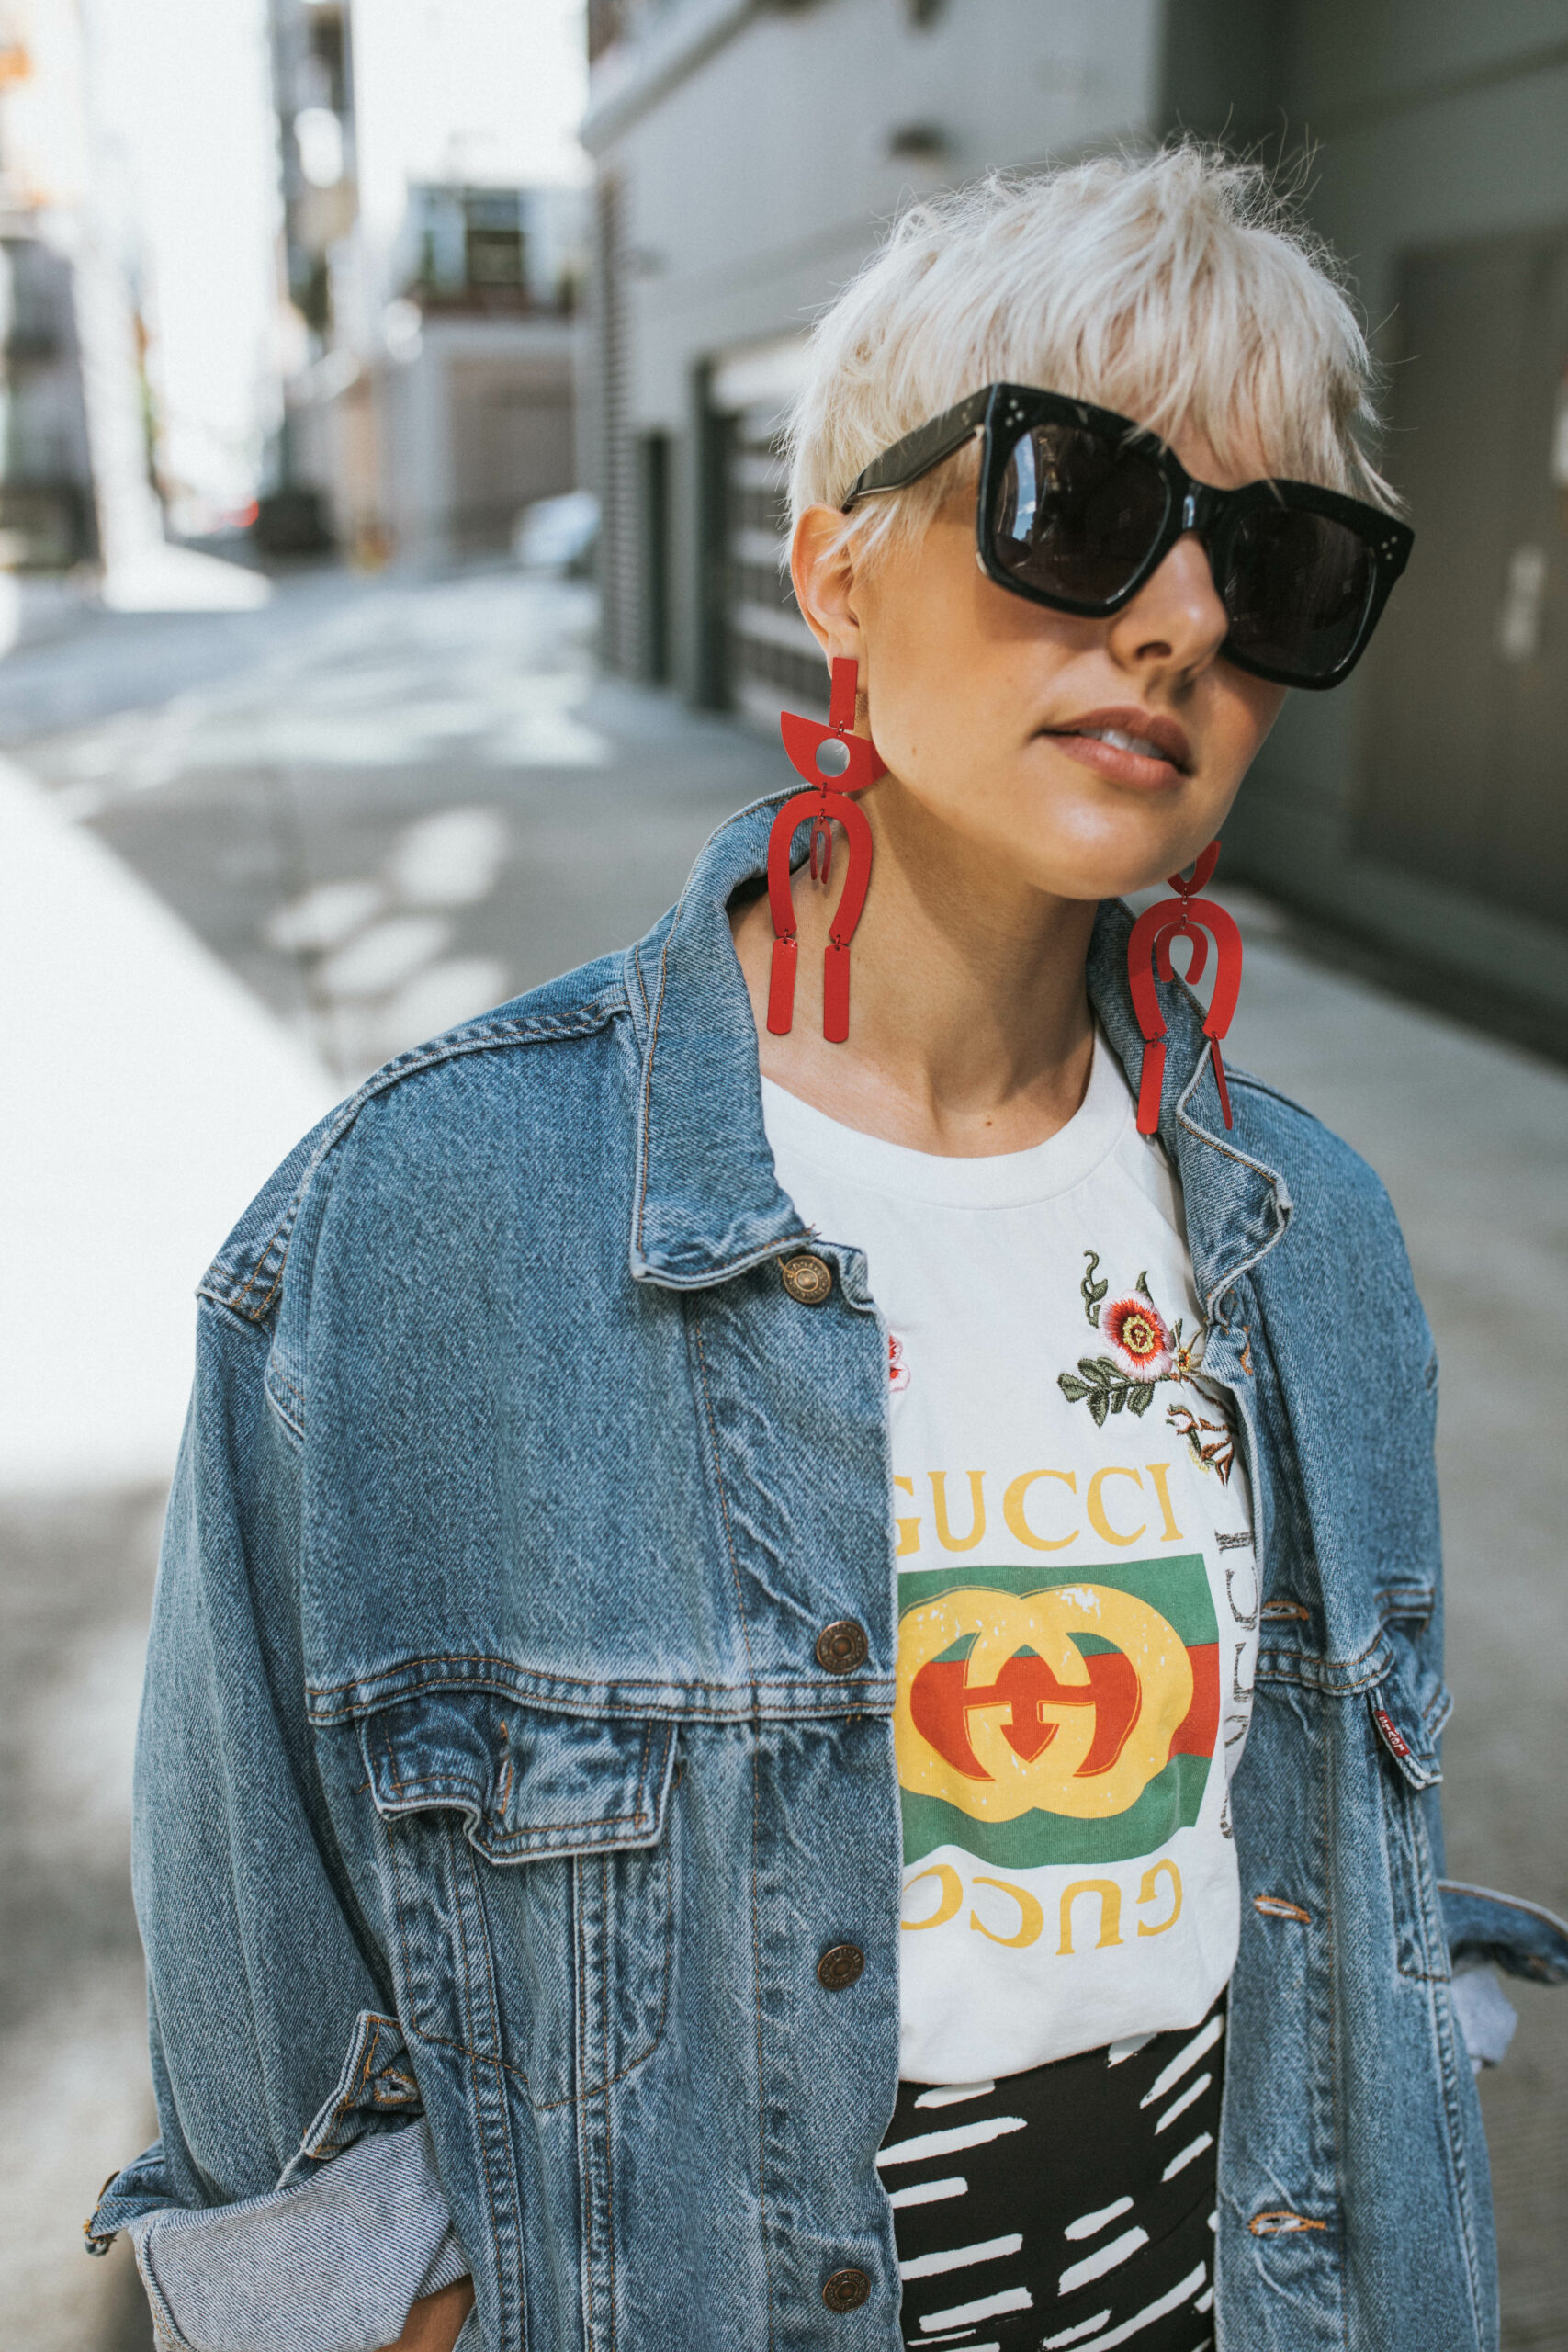 Mango Earrings, Gucci Tee, Celine Sunnies- BloggerNotBillionaire.com